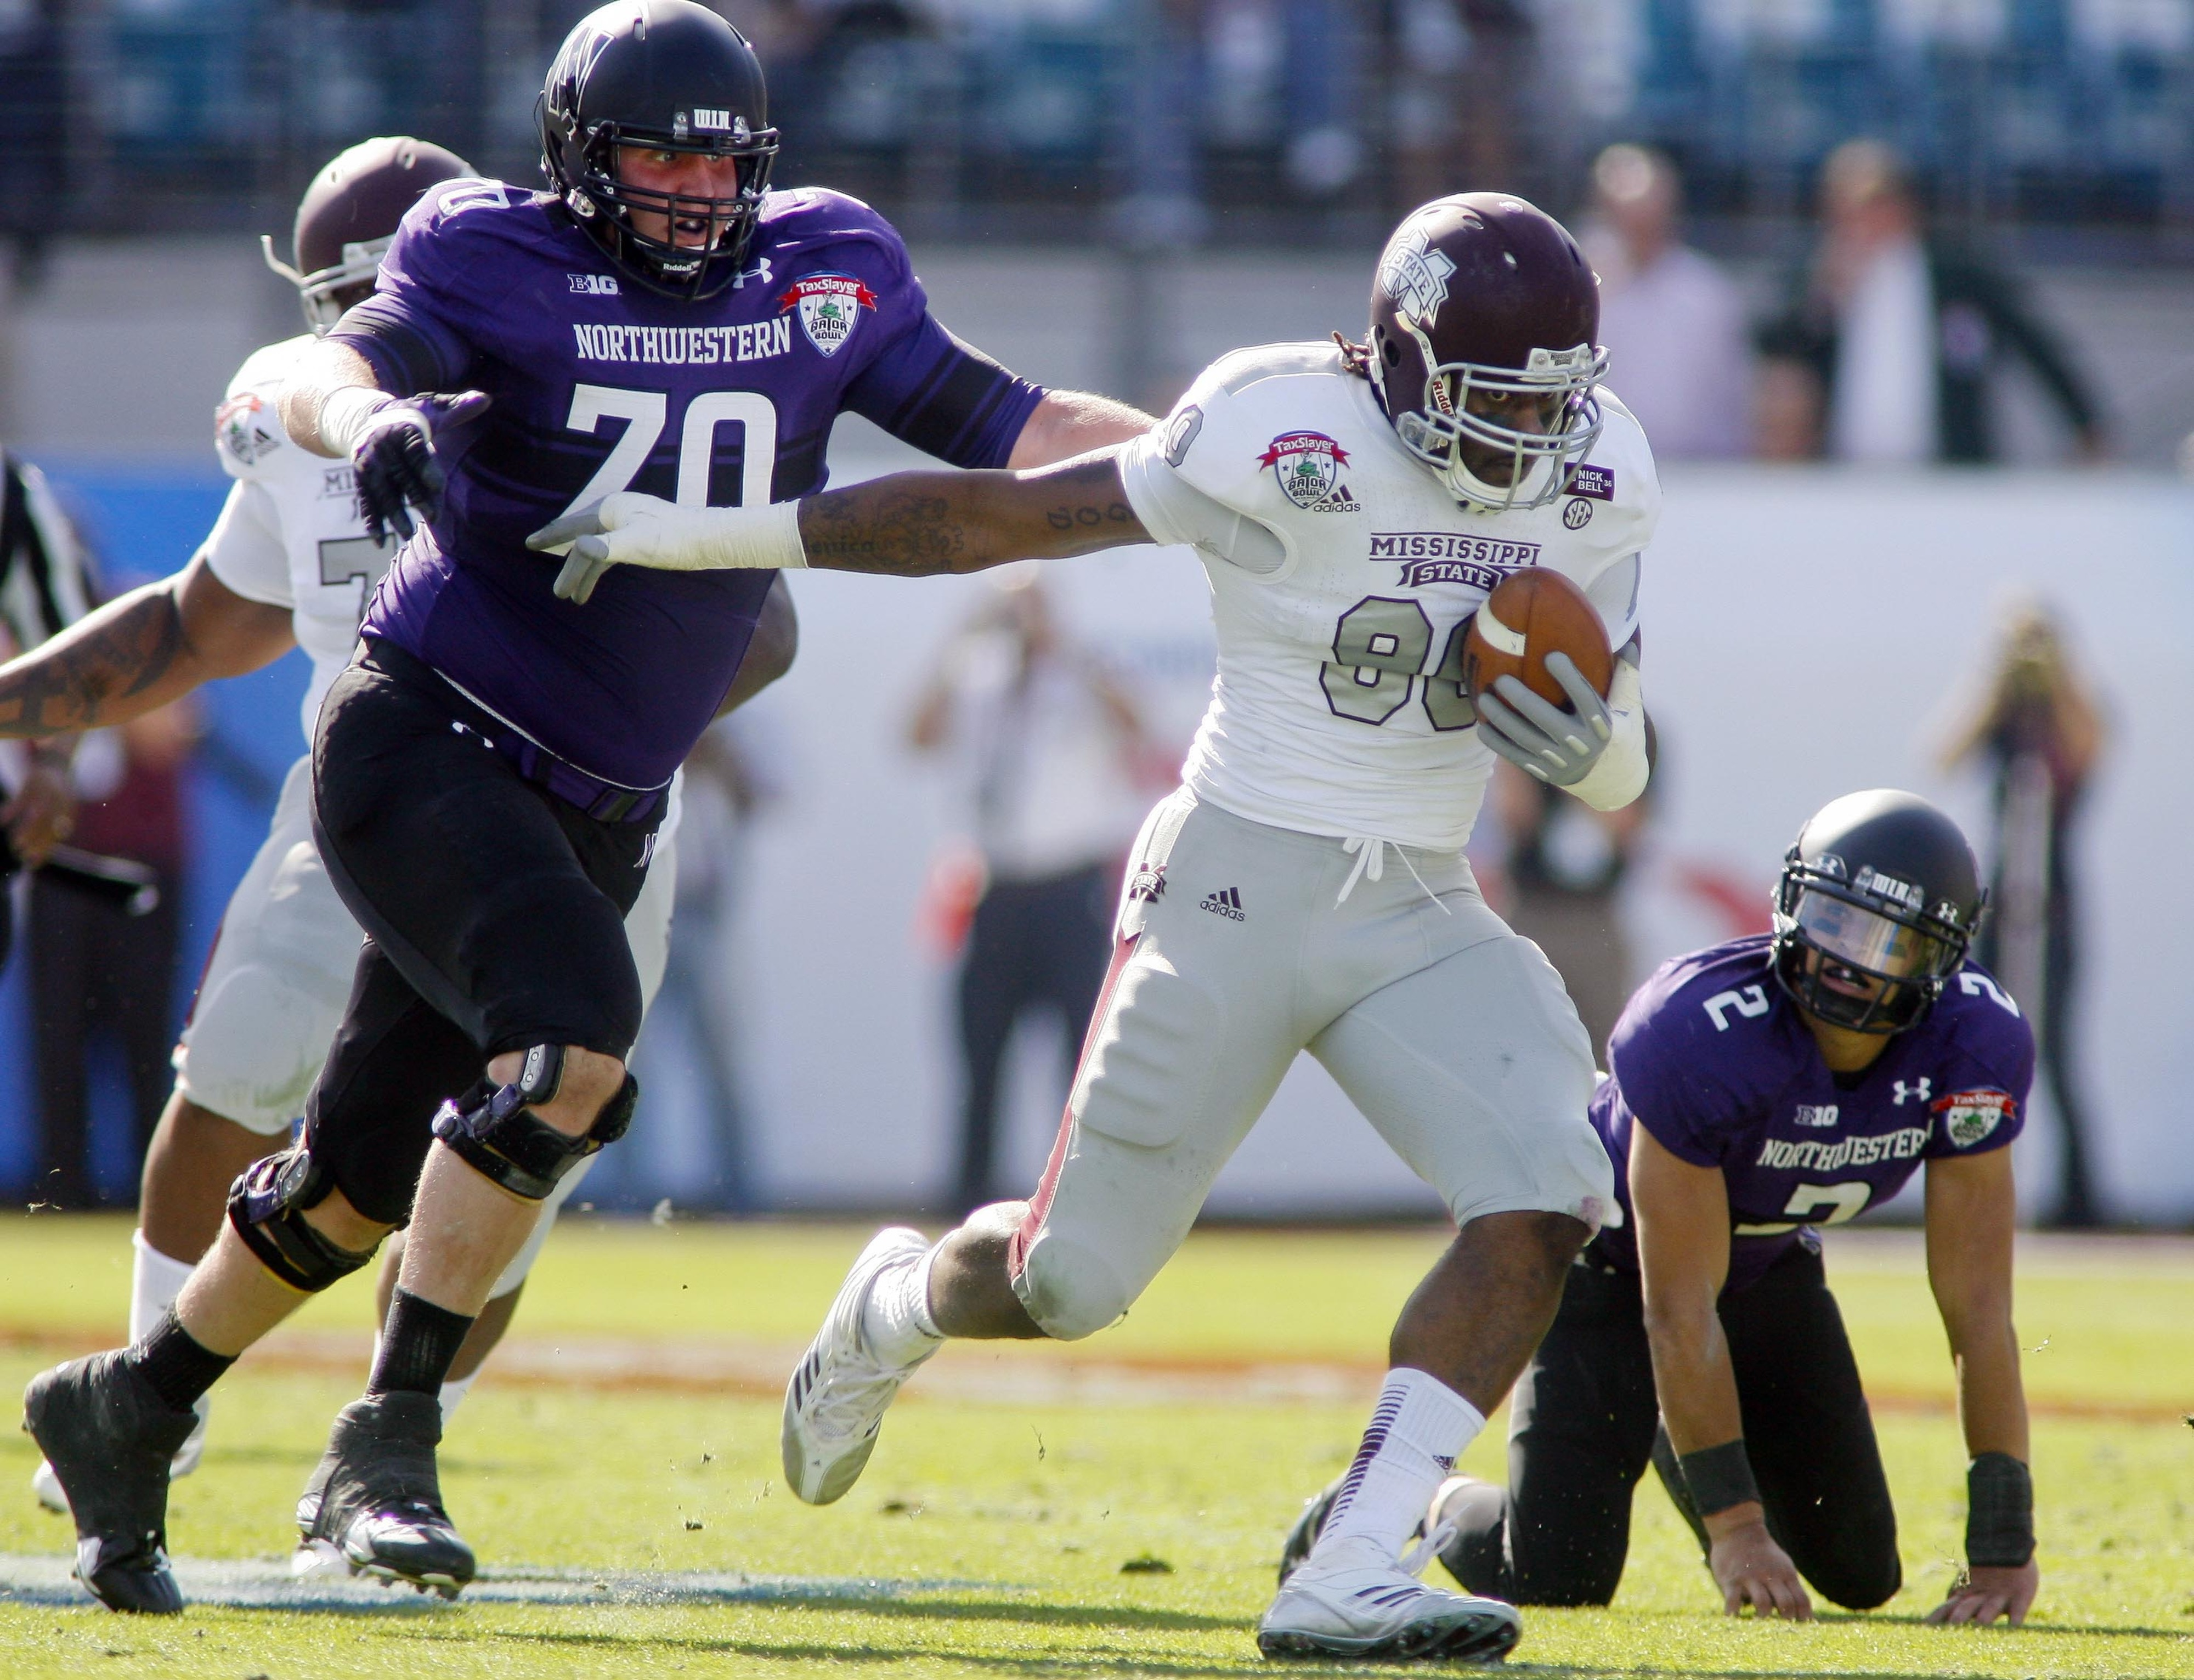 Patrick Ward using his knowledge of angles to chase down a Mississippi State player, while an ingrateful Kain Colter sits helpless on his knees because of his selfishness/inferior engineering background